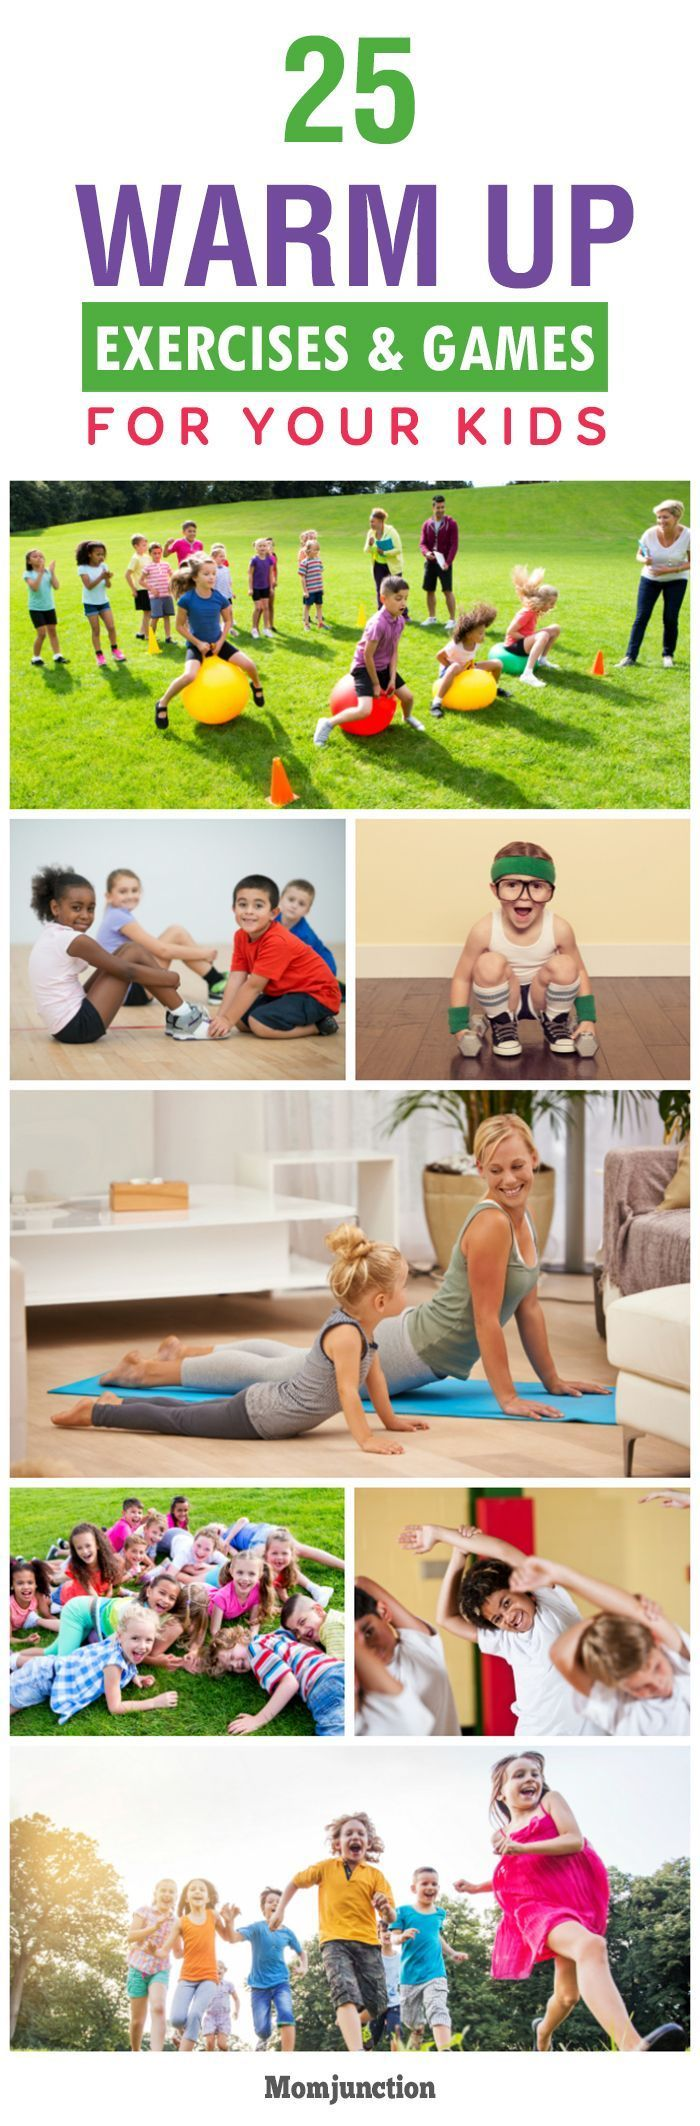 Top 25 Warm Up Exercises & Games For Your Kids